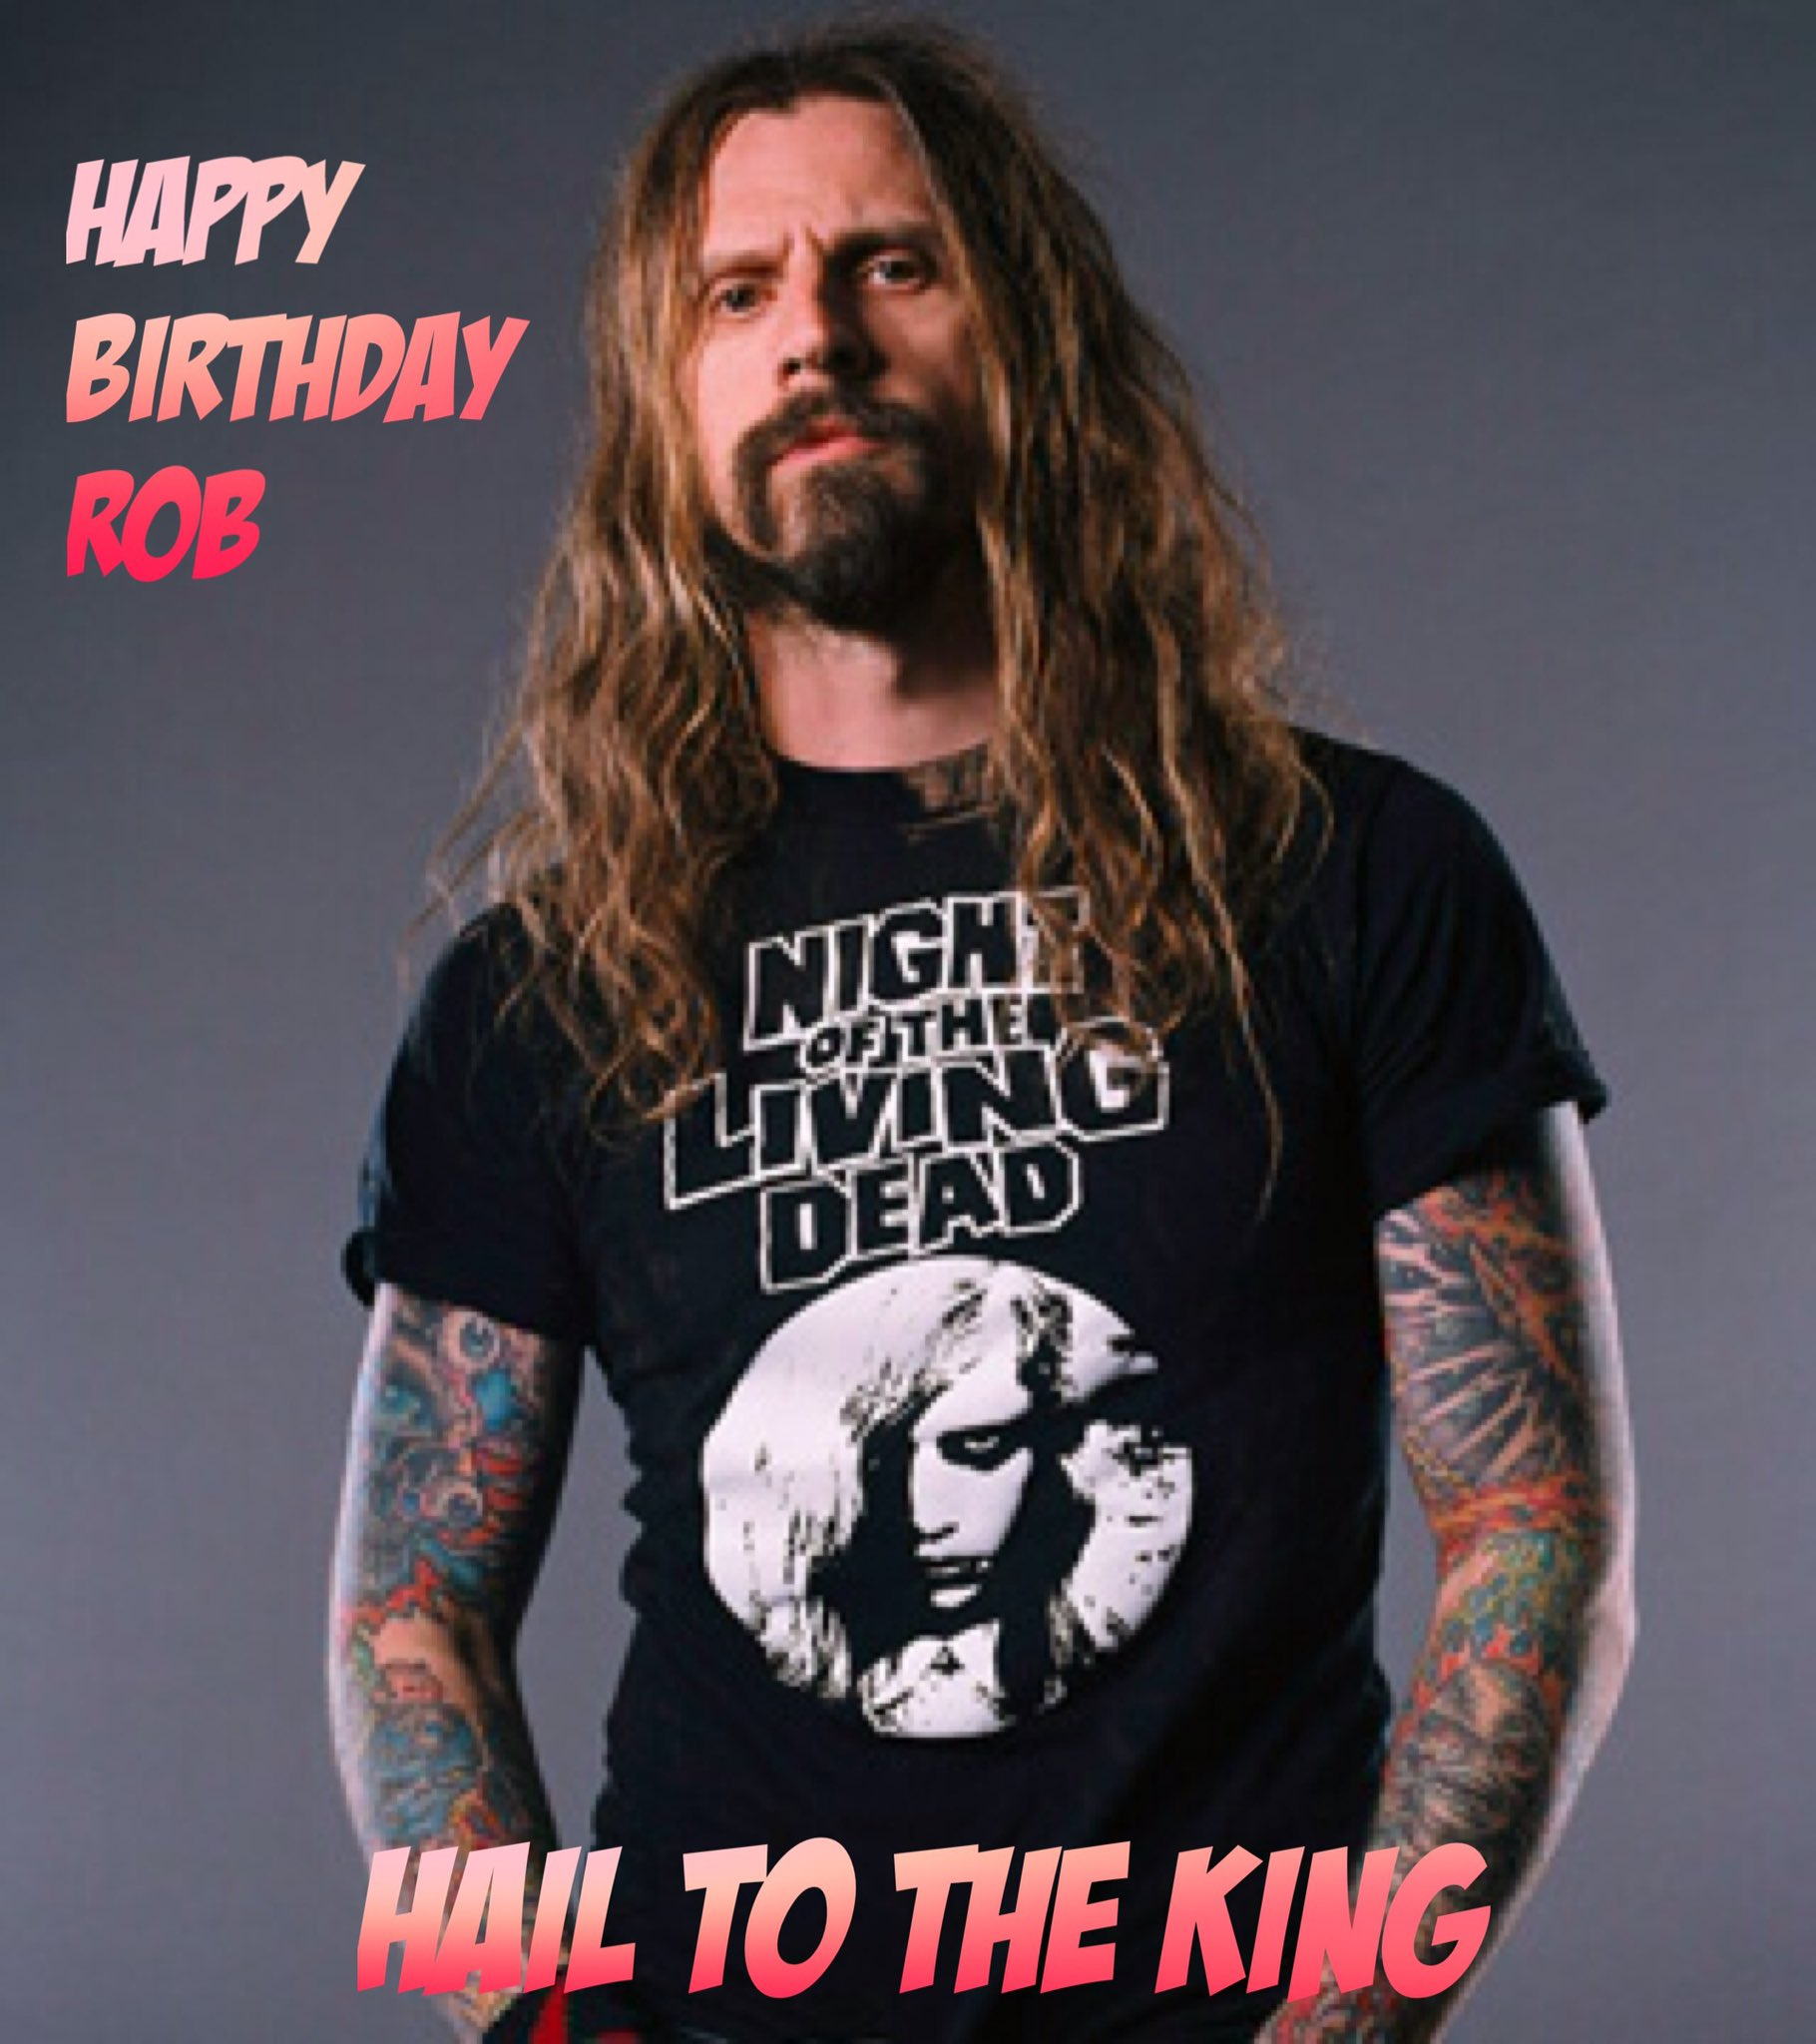 Happy Birthday to the legendary ROB ZOMBIE!